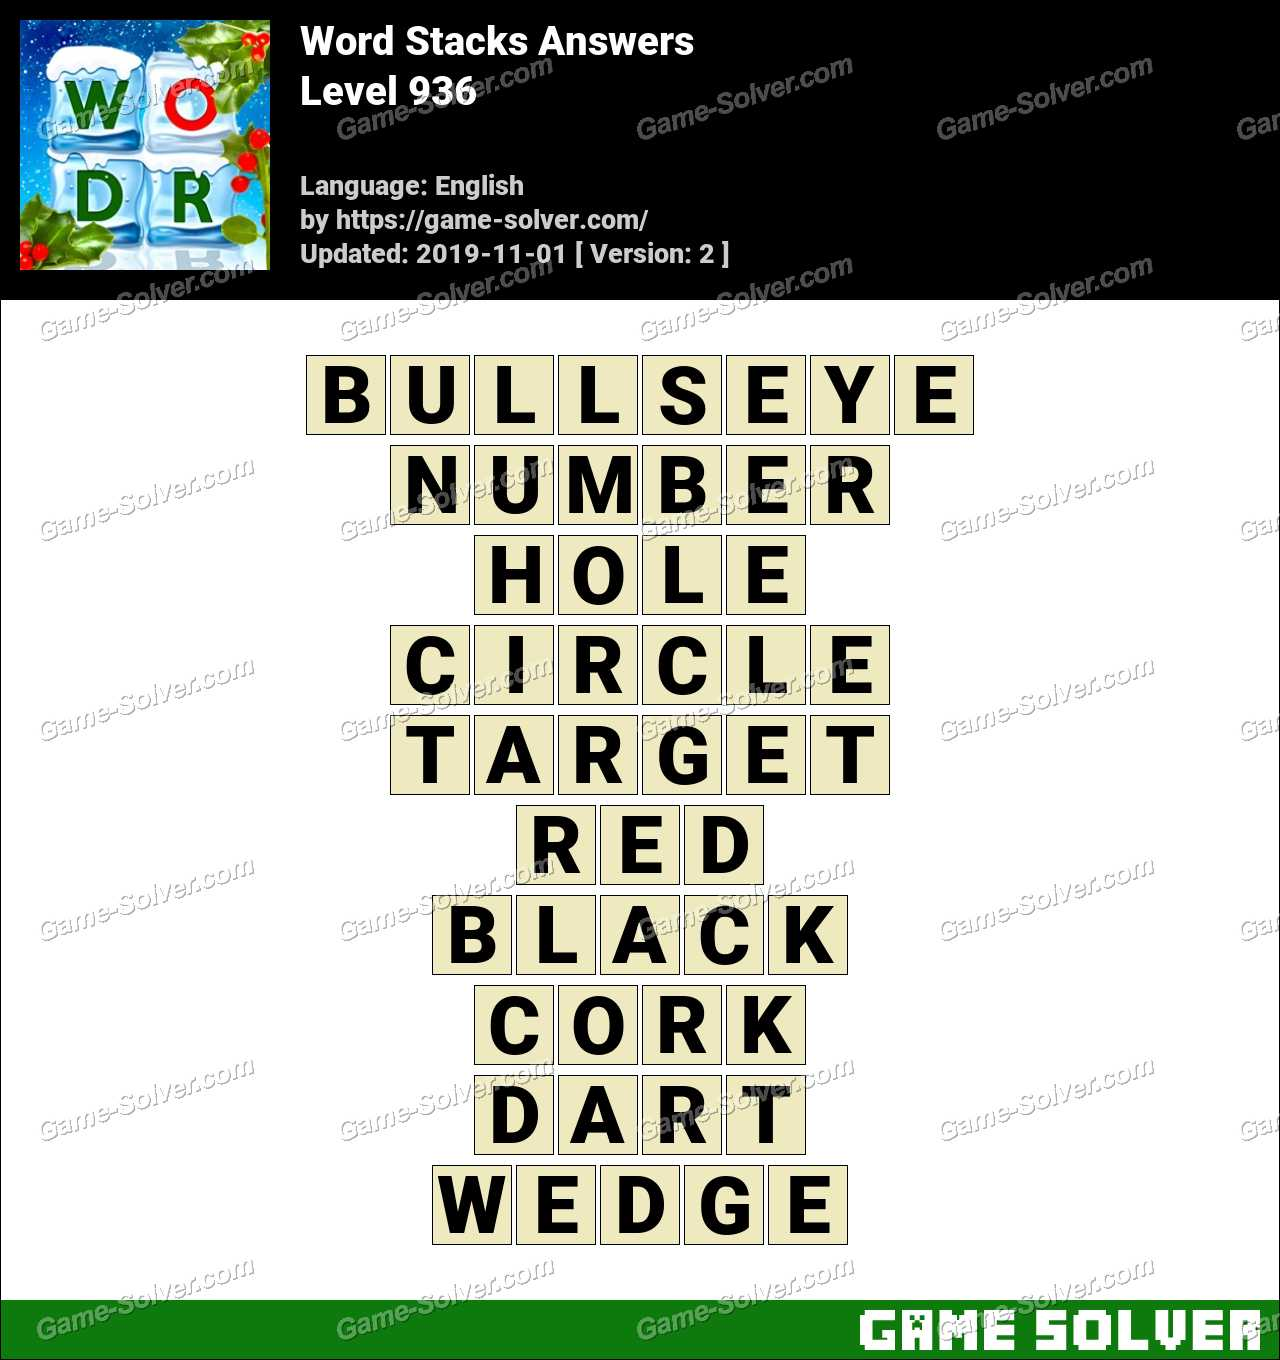 Word Stacks Level 936 Answers